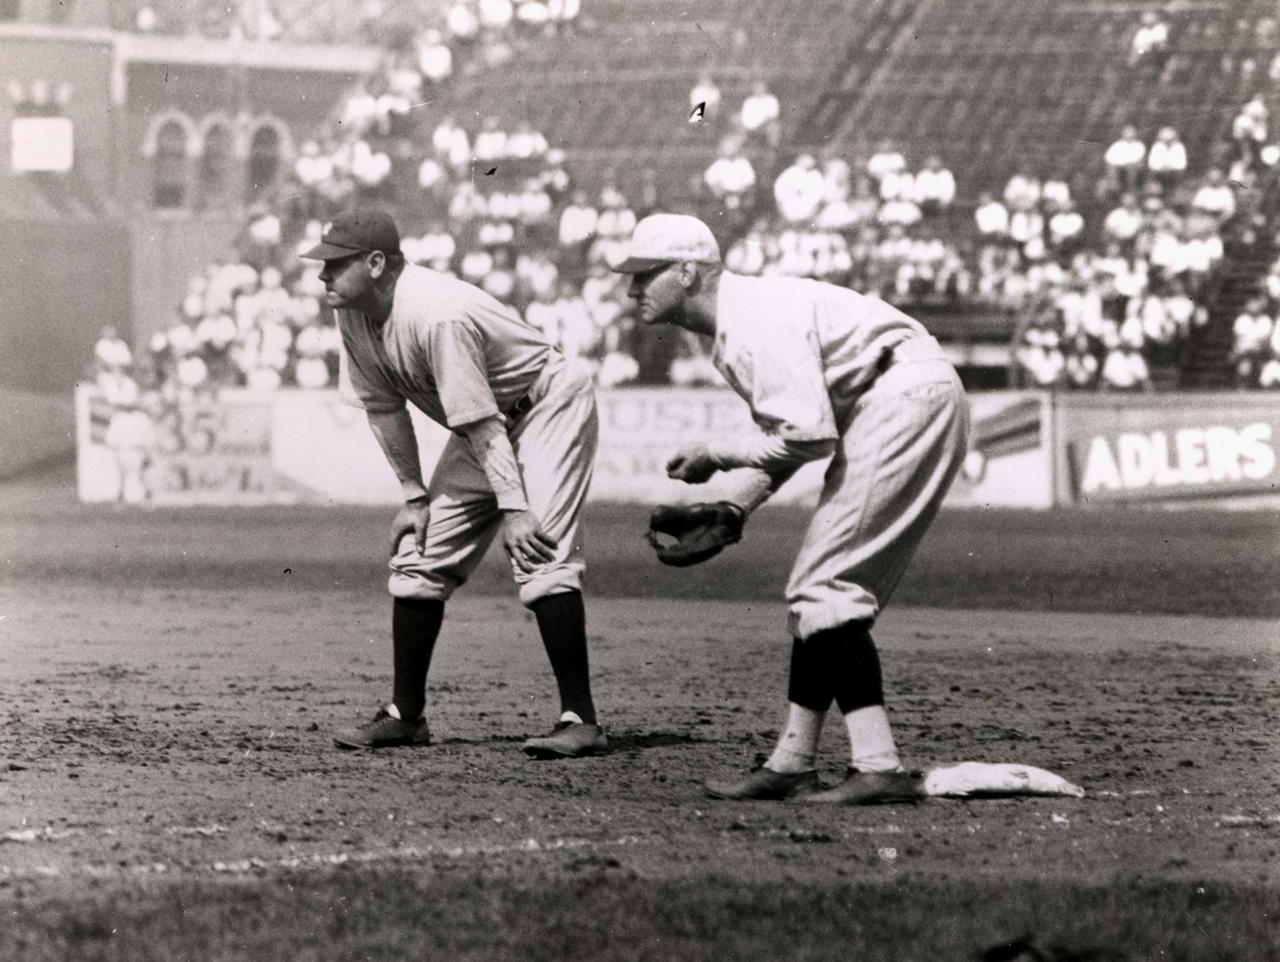 Waite Hoyt Clears Up Some Misconceptions of Babe Ruth